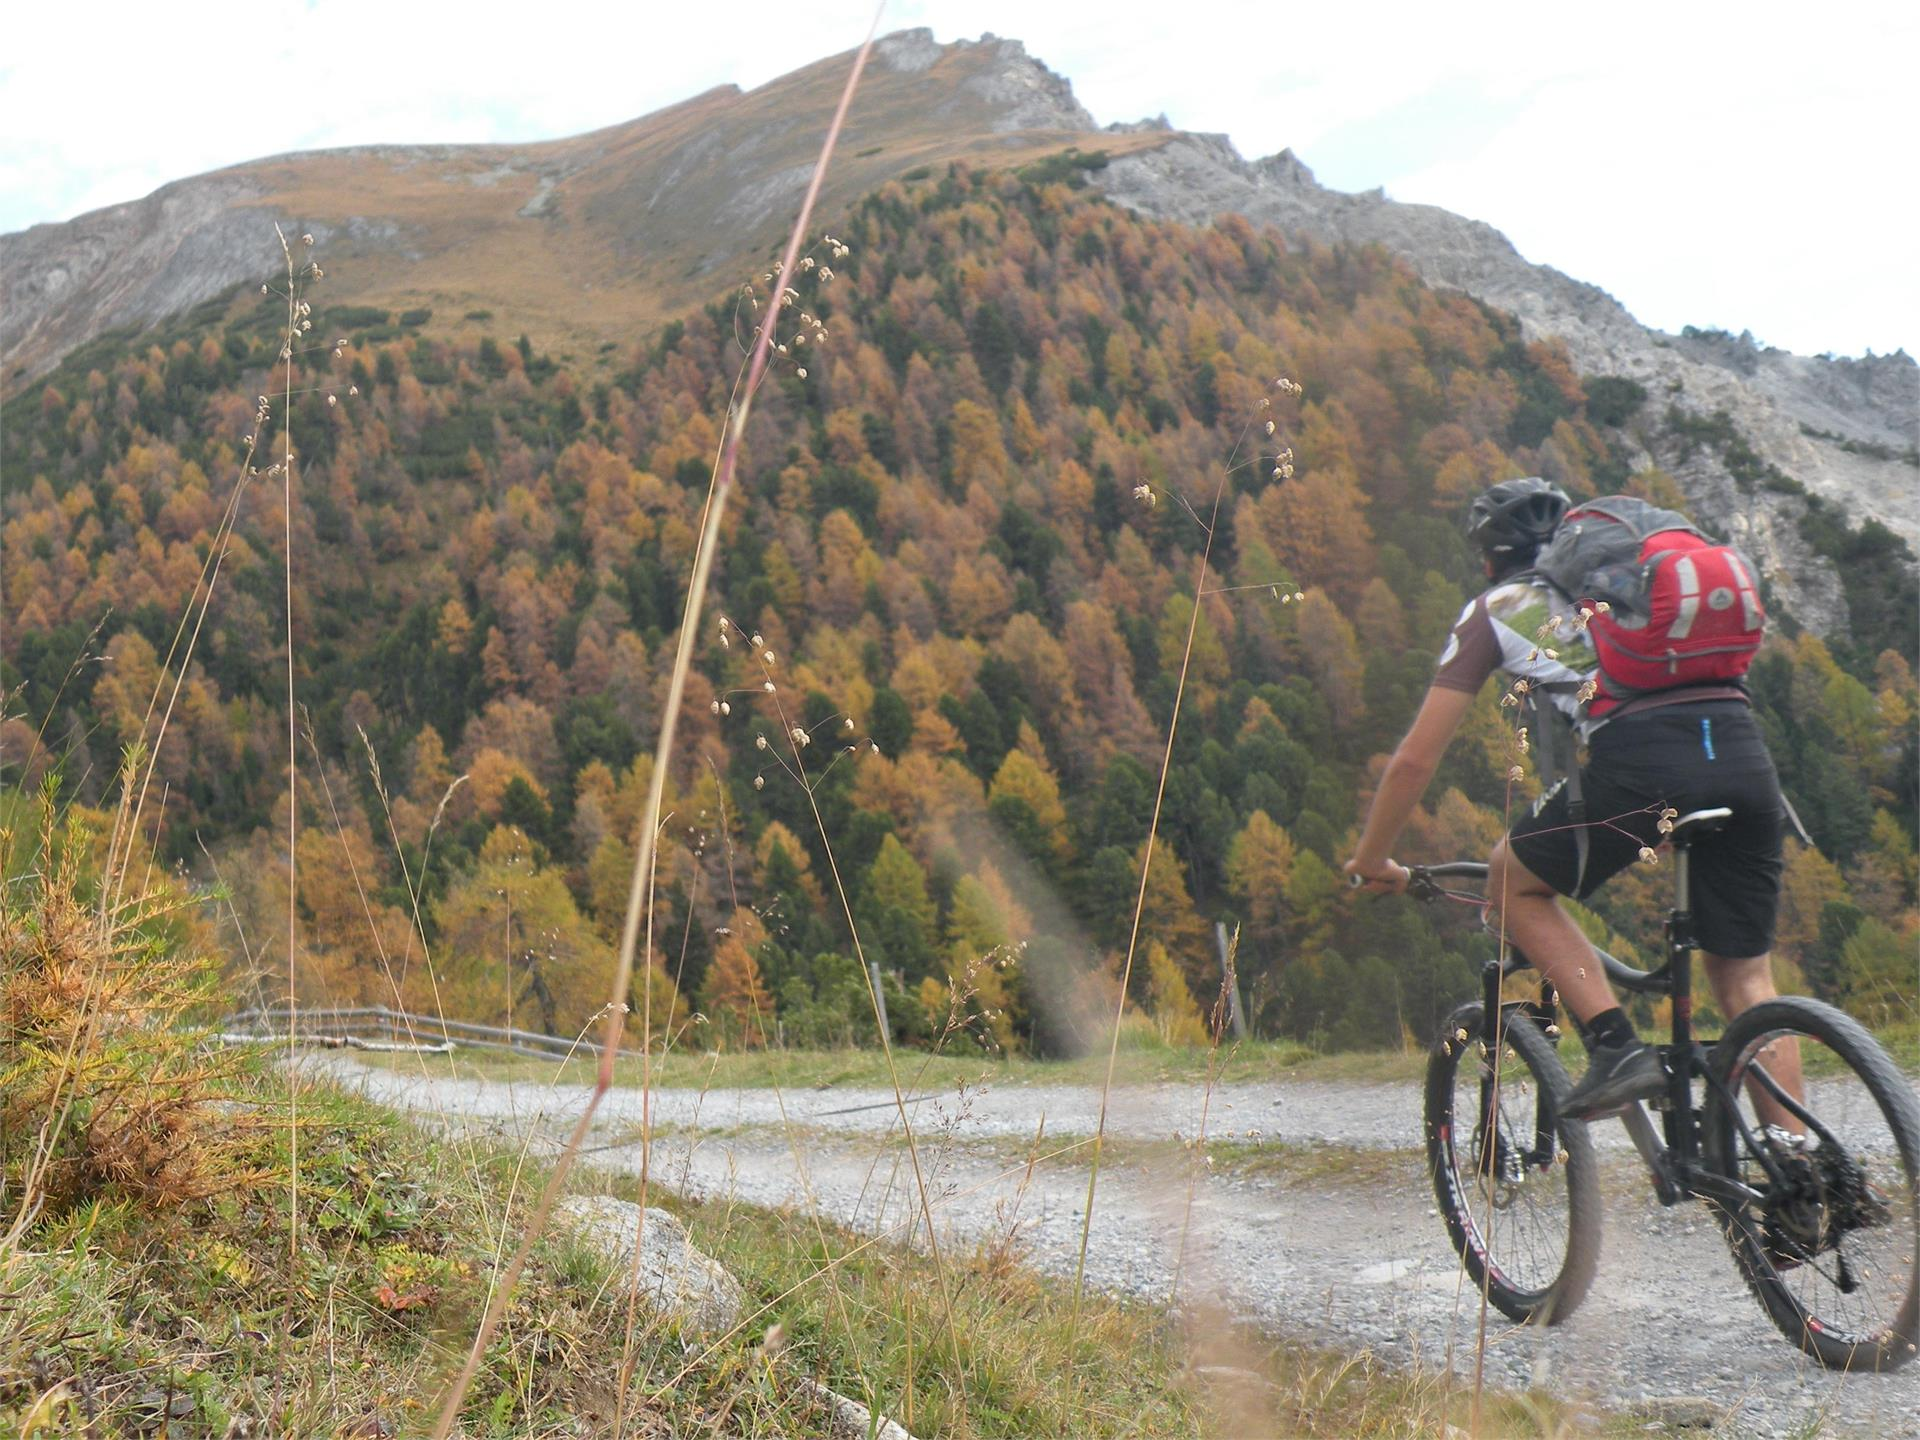 Giro in mountainbike Malga Curon